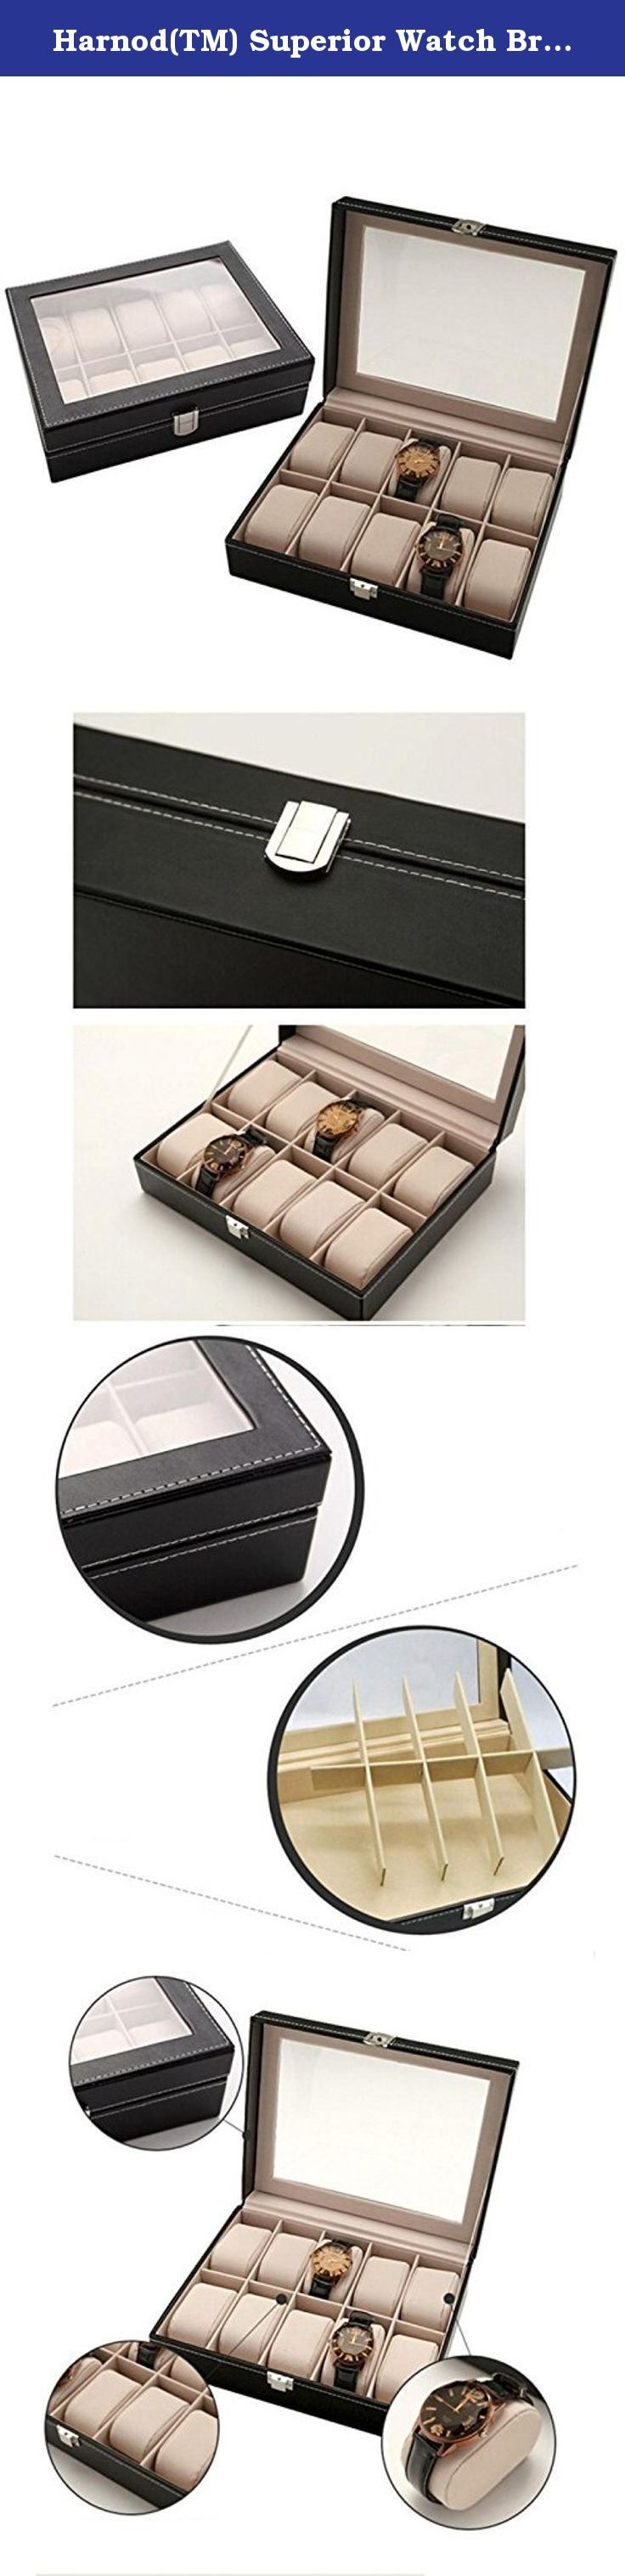 Harnod(TM) Superior Watch Bracelet Box Velvet Gift Display Jewellery Case August 9. 100% brand new and high quality. Quantity: 1 Watch Display Storage Box Holder Best for displaying your watches whatever in a shop or on your dressing table Perfect for personal use and business use Material: PU leather(Surface), suede(Inside) 10 insert slots and10removable pads inside for keeping watches organized, suit your needs perfectly Also Ideal for home jewelry Decoration Keep the watches dust free...